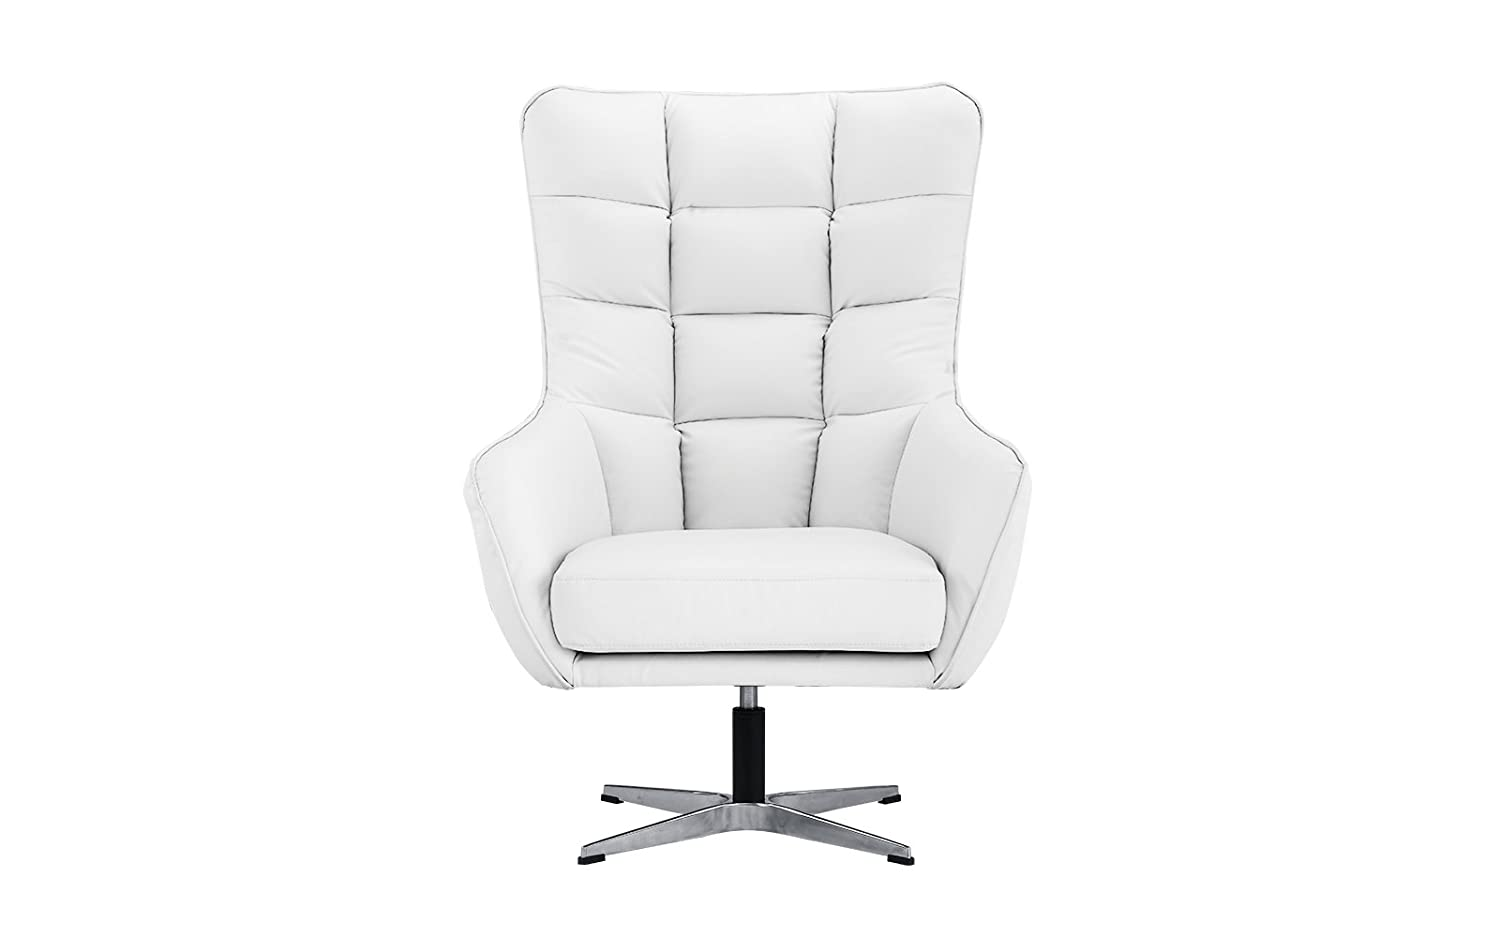 Amazon com modern living room bonded leather tufted armchair home office executive swivel chair white kitchen dining